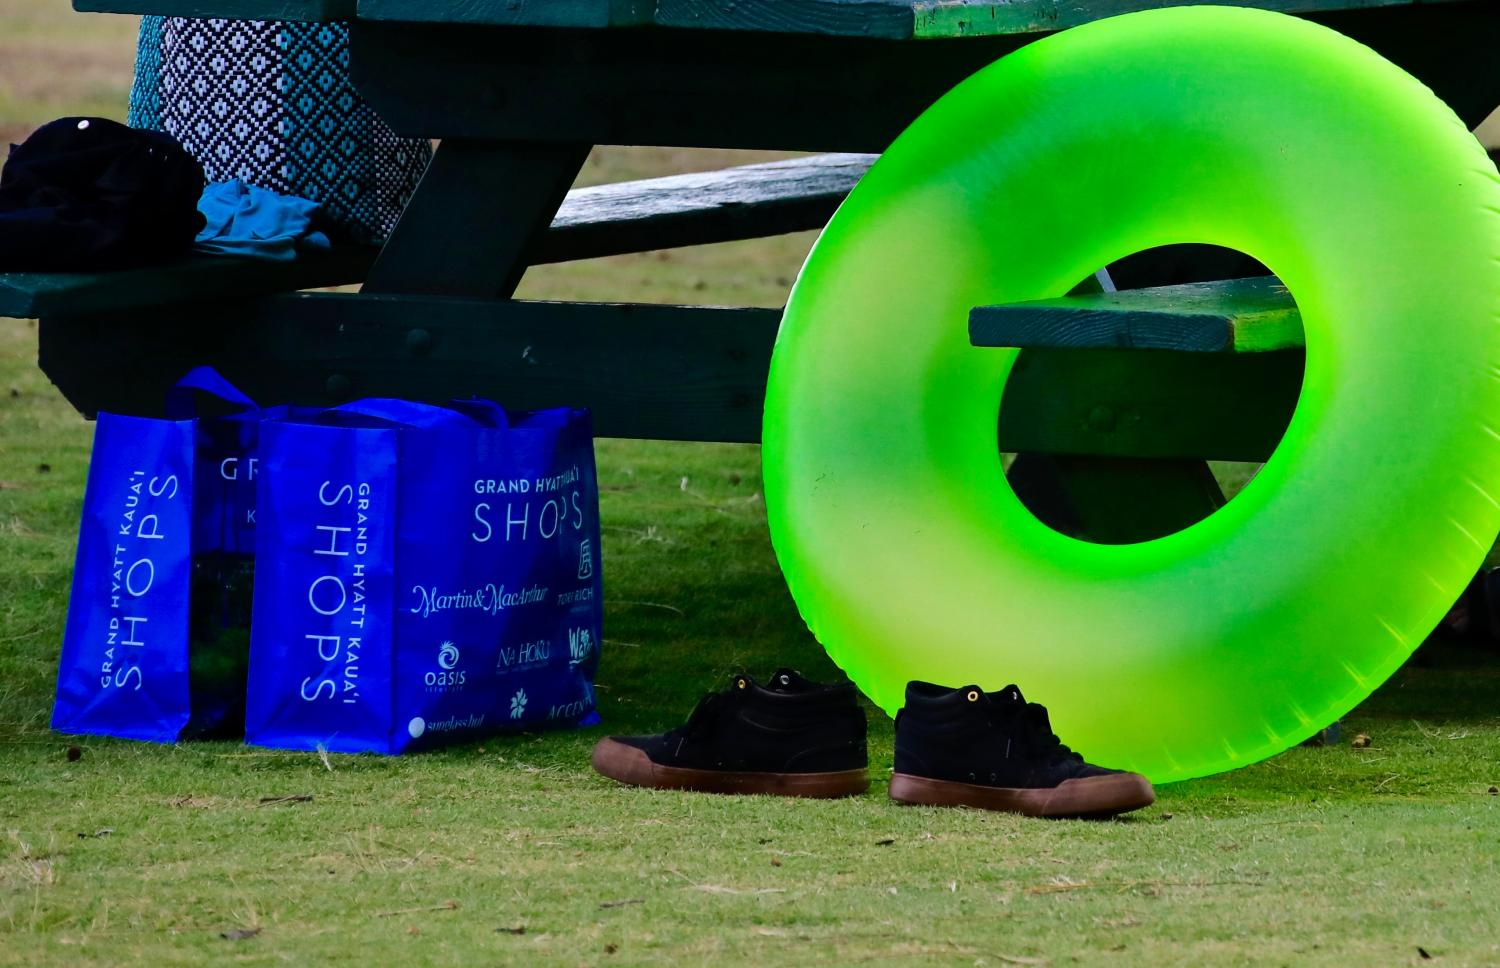 """MAXIMUM CONTRAST""-THIS NEON GREEN  BEACH TUBE,AGAINST THE BLUE SHOPPING BAGS DREW MY ATTENTION AS I WAS WALKING DOWN THE BEACH. I NEED TO GET A SHIRT WITH THESE COLORS!"